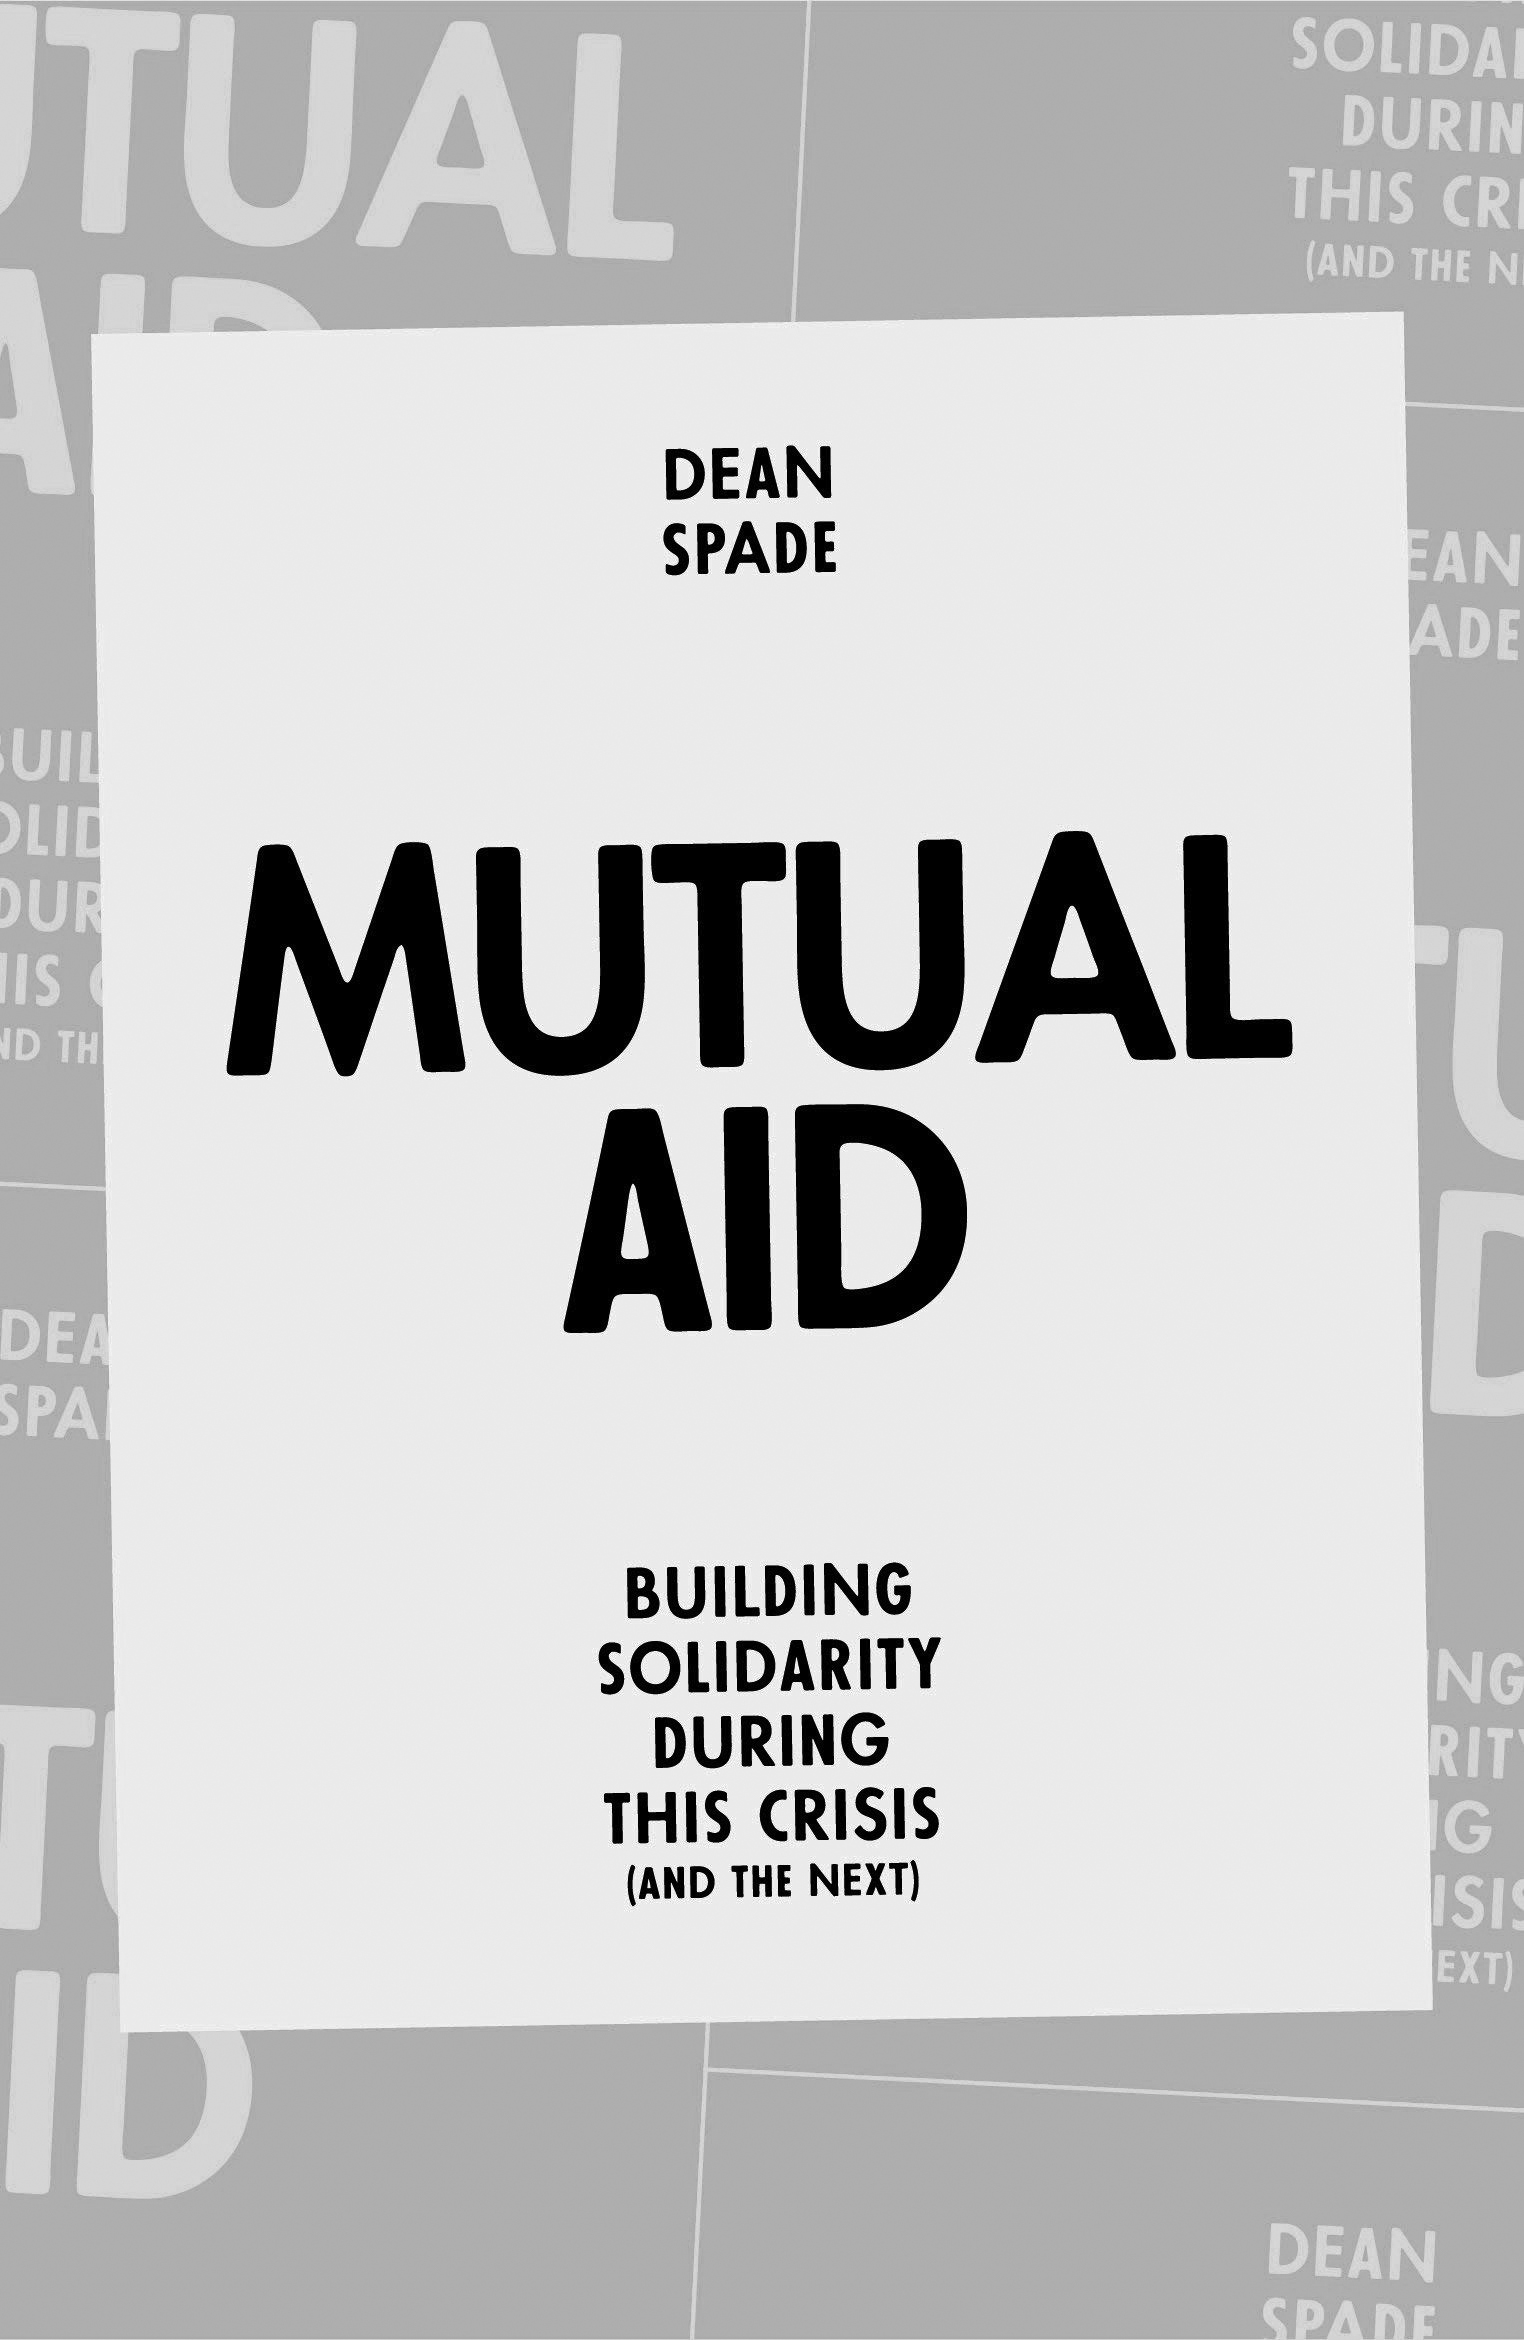 """Book cover for Mutual Aid: Building Solidarity During This Crisis (and the Next) by Dean Spade. In the center is a light gray rectangle, and inside reads """"Dean Spade"""" in small black letters at the top, then underneath it reads """"Mutual Aid"""" in large black letters, then underneath that it reads """"Building Solidarity During This Crisis (and the Next)"""" in small black letters. The light rectangle is bordered by a darker color, with the book's title repeating in different places throughout."""